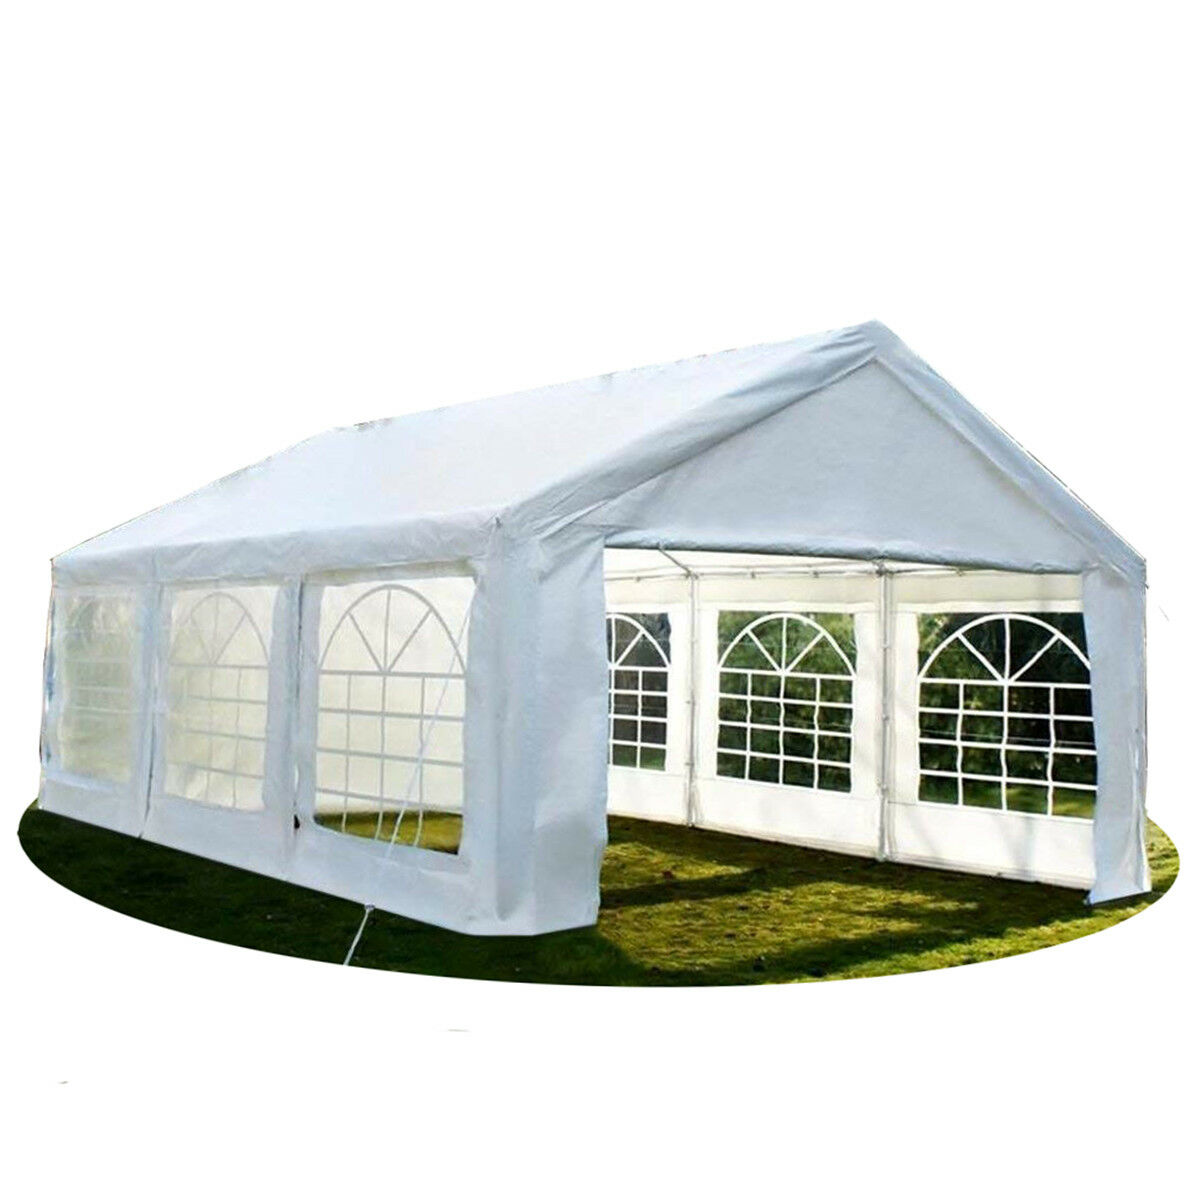 20'x20' Heavy Duty Party Tent Carport Canopy White W/ Sides